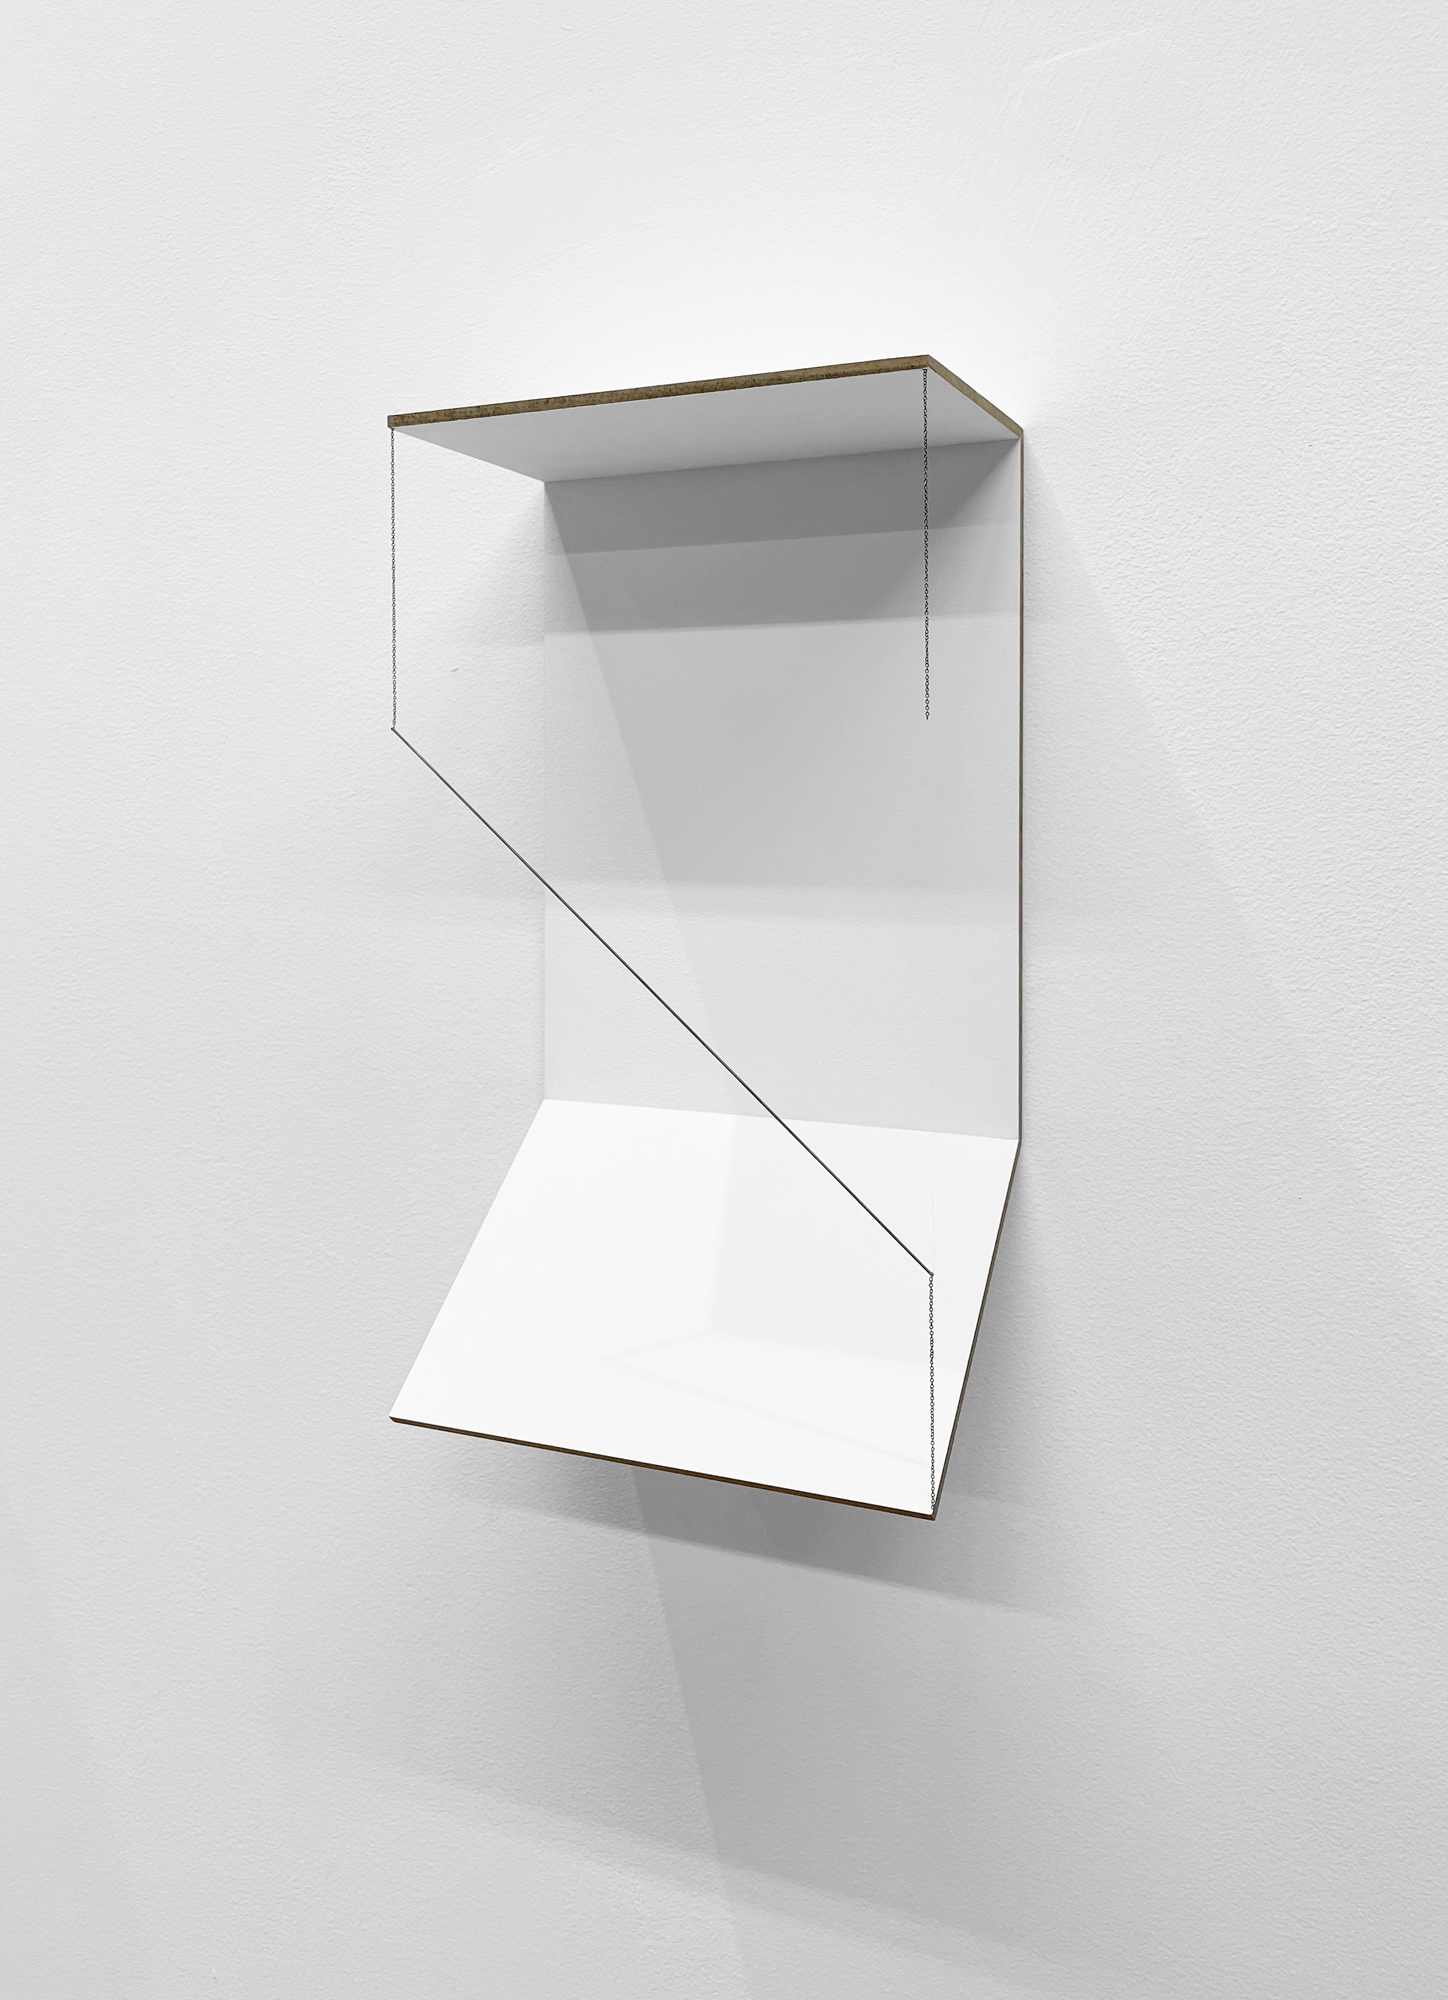 Jong Oh 2021 Wood panel, paint, metal rod, chain 10.25 x 5.5 x 3 in. 2021 Marc Straus Gallery